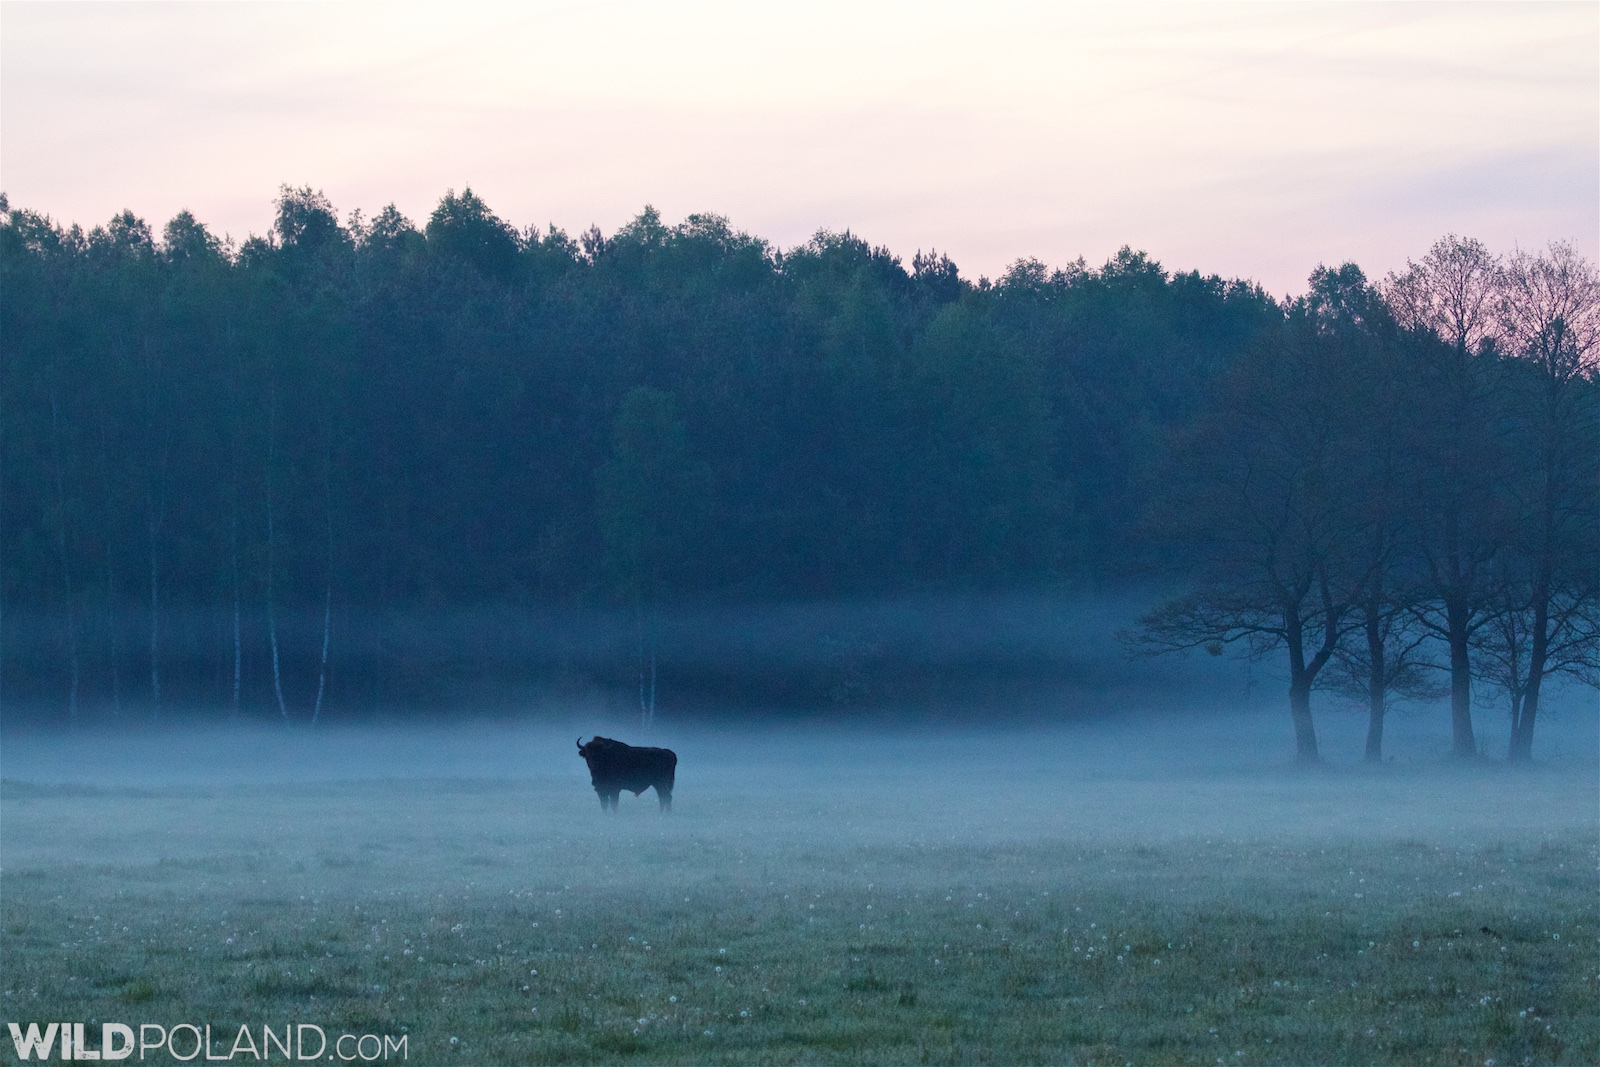 Bison at dawn in the Białowieża Forest